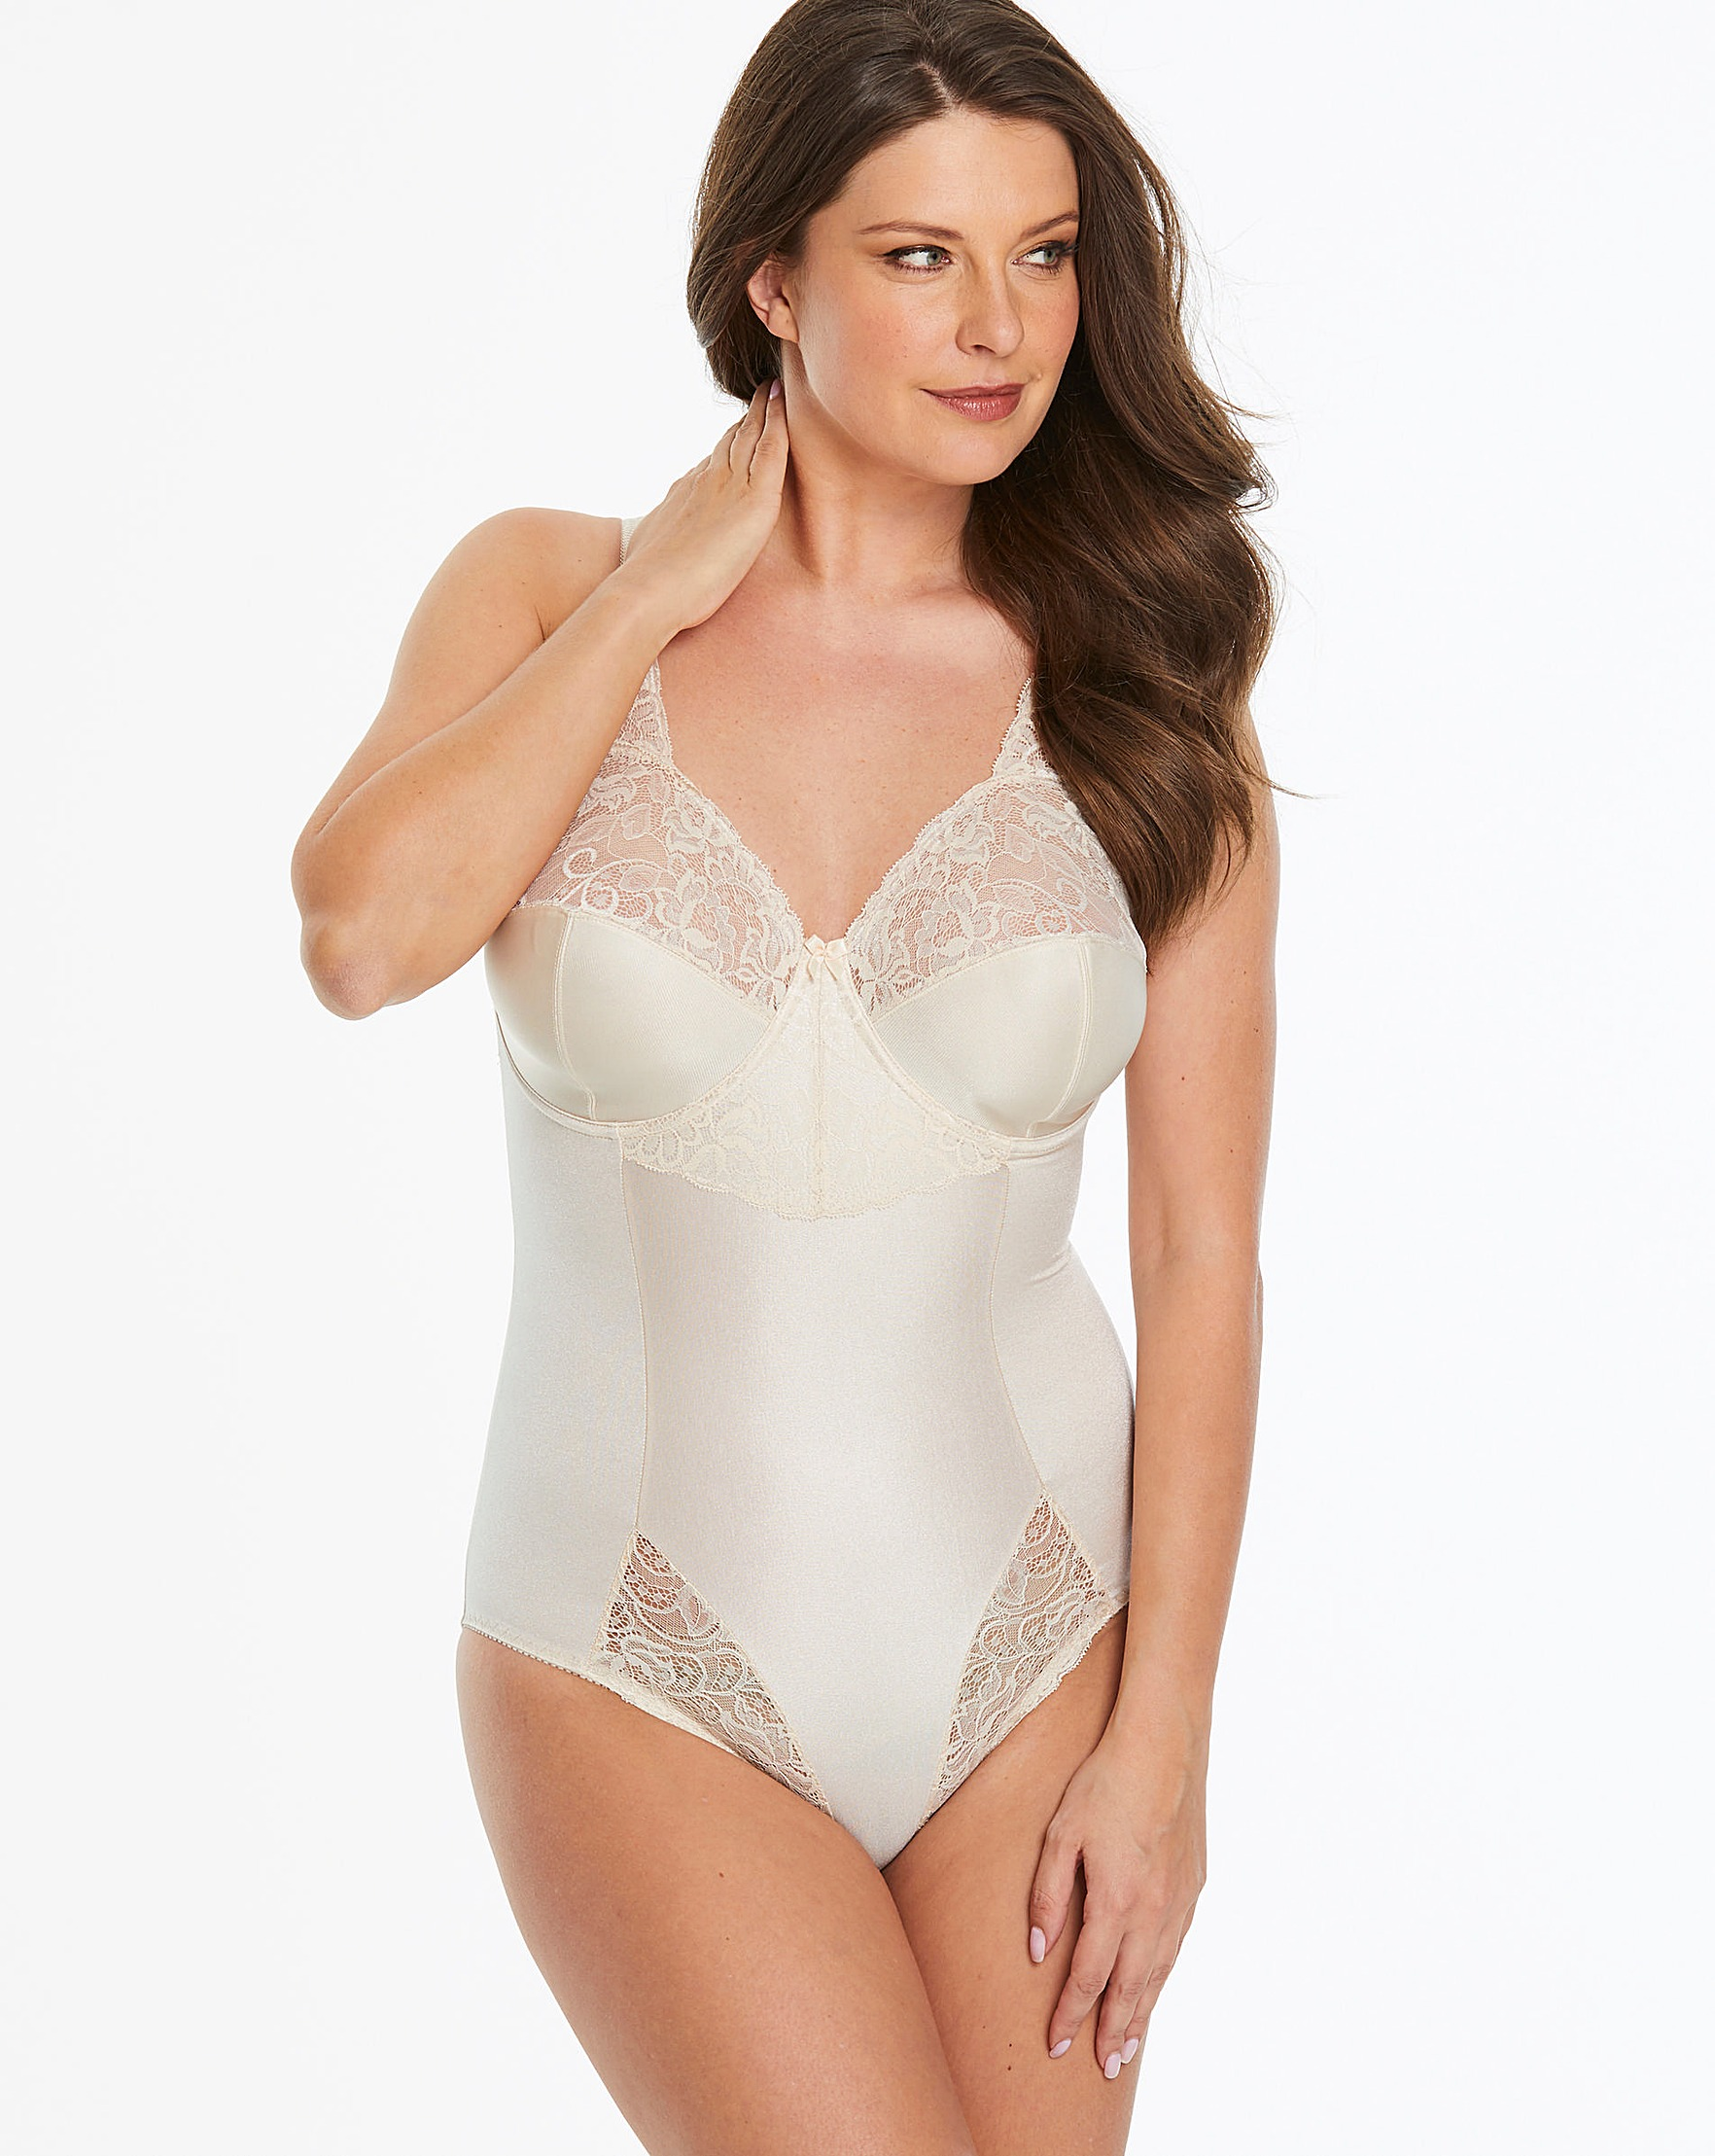 Charnos Superfit Full Cup Bodyshaper  bf2391e7c